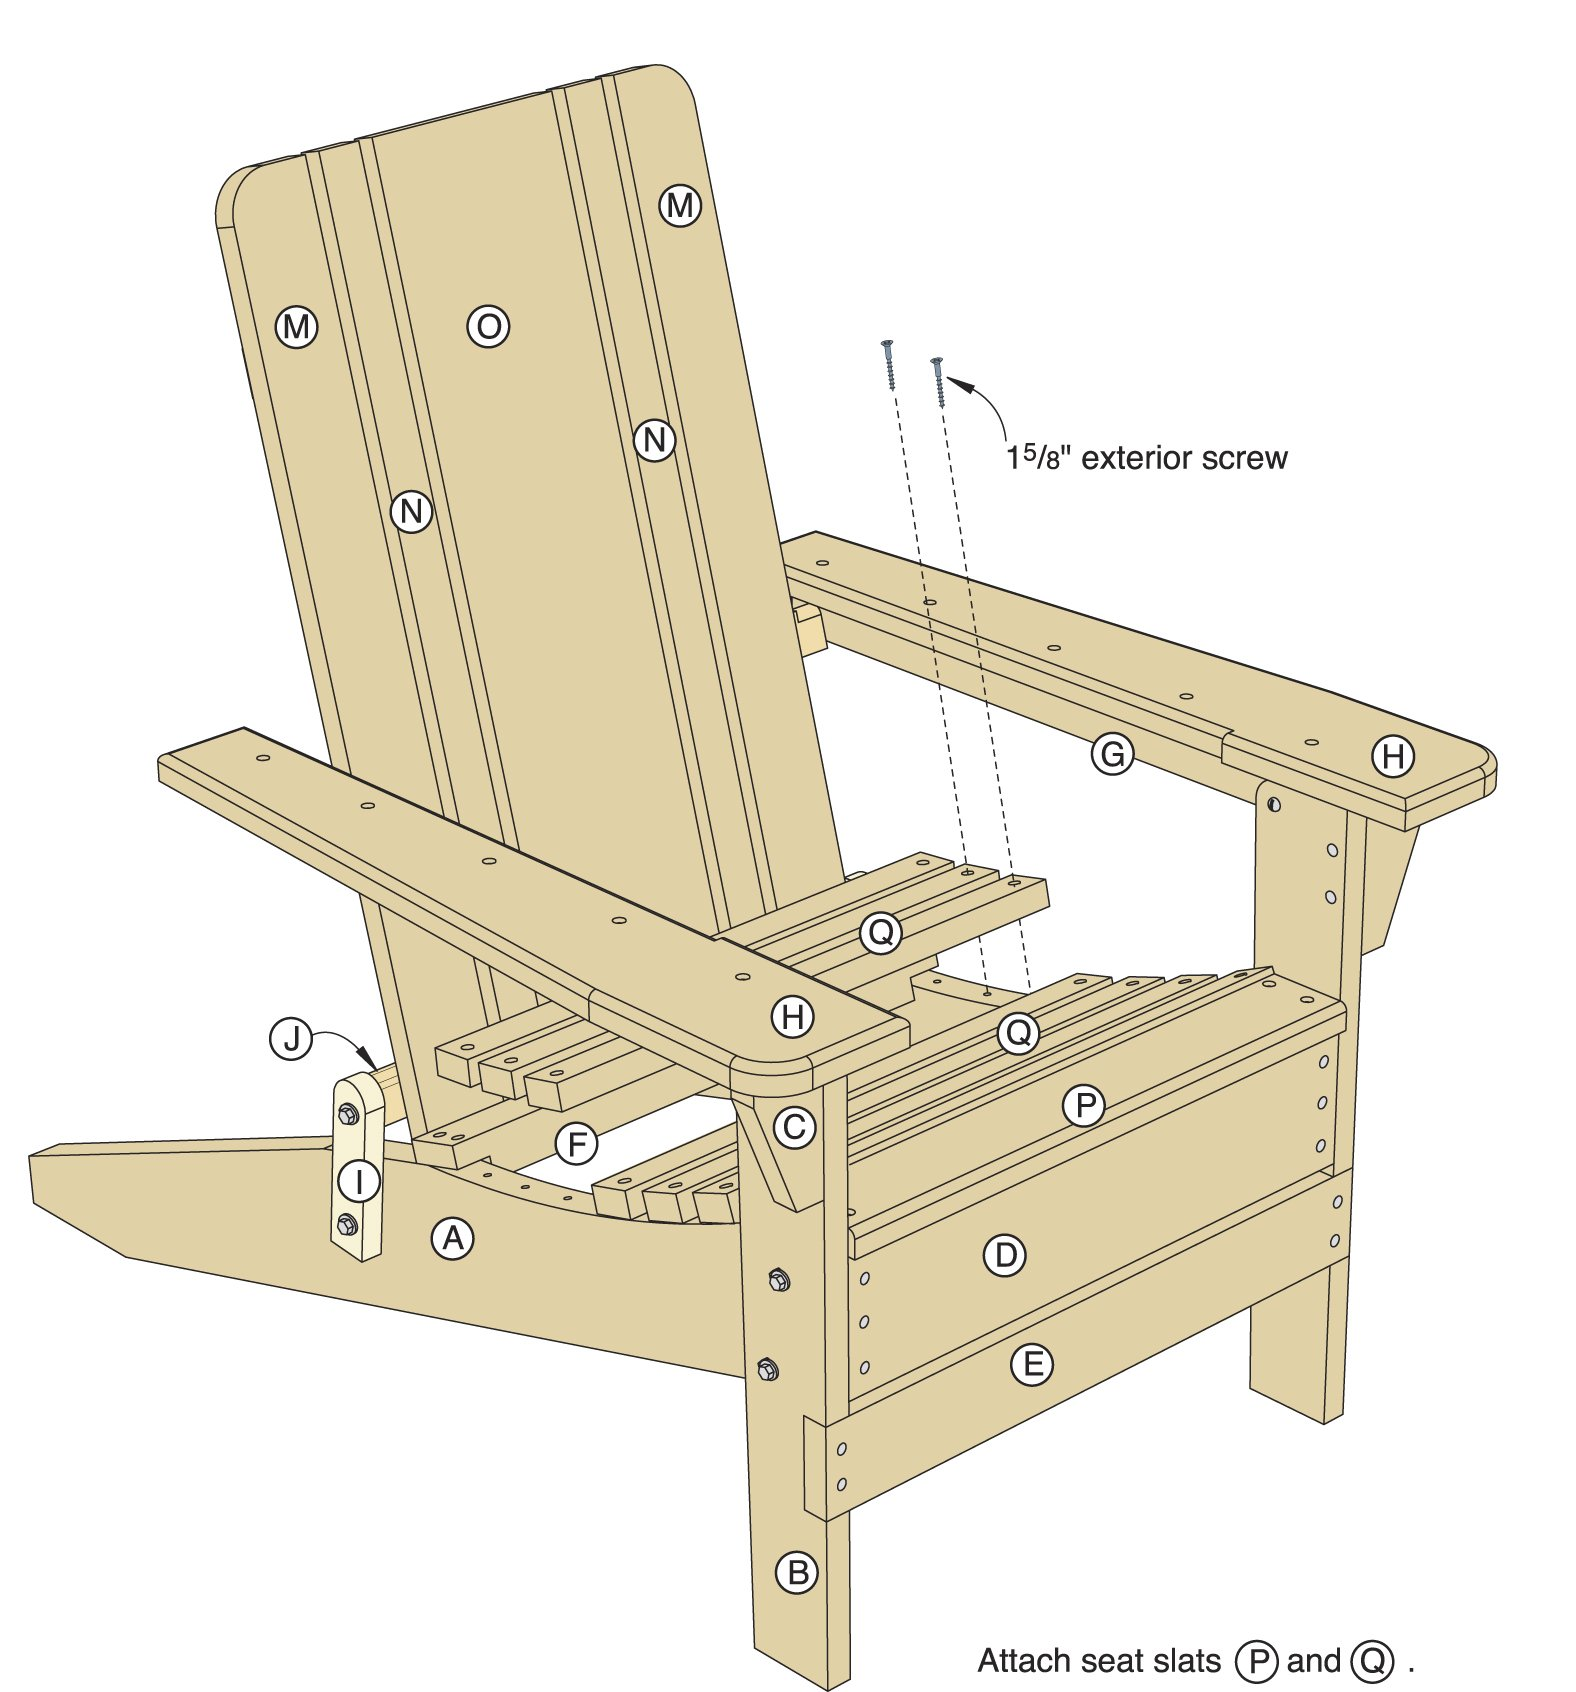 ... Plans In Addition Folding Adirondack Chair Plans In Addition | House